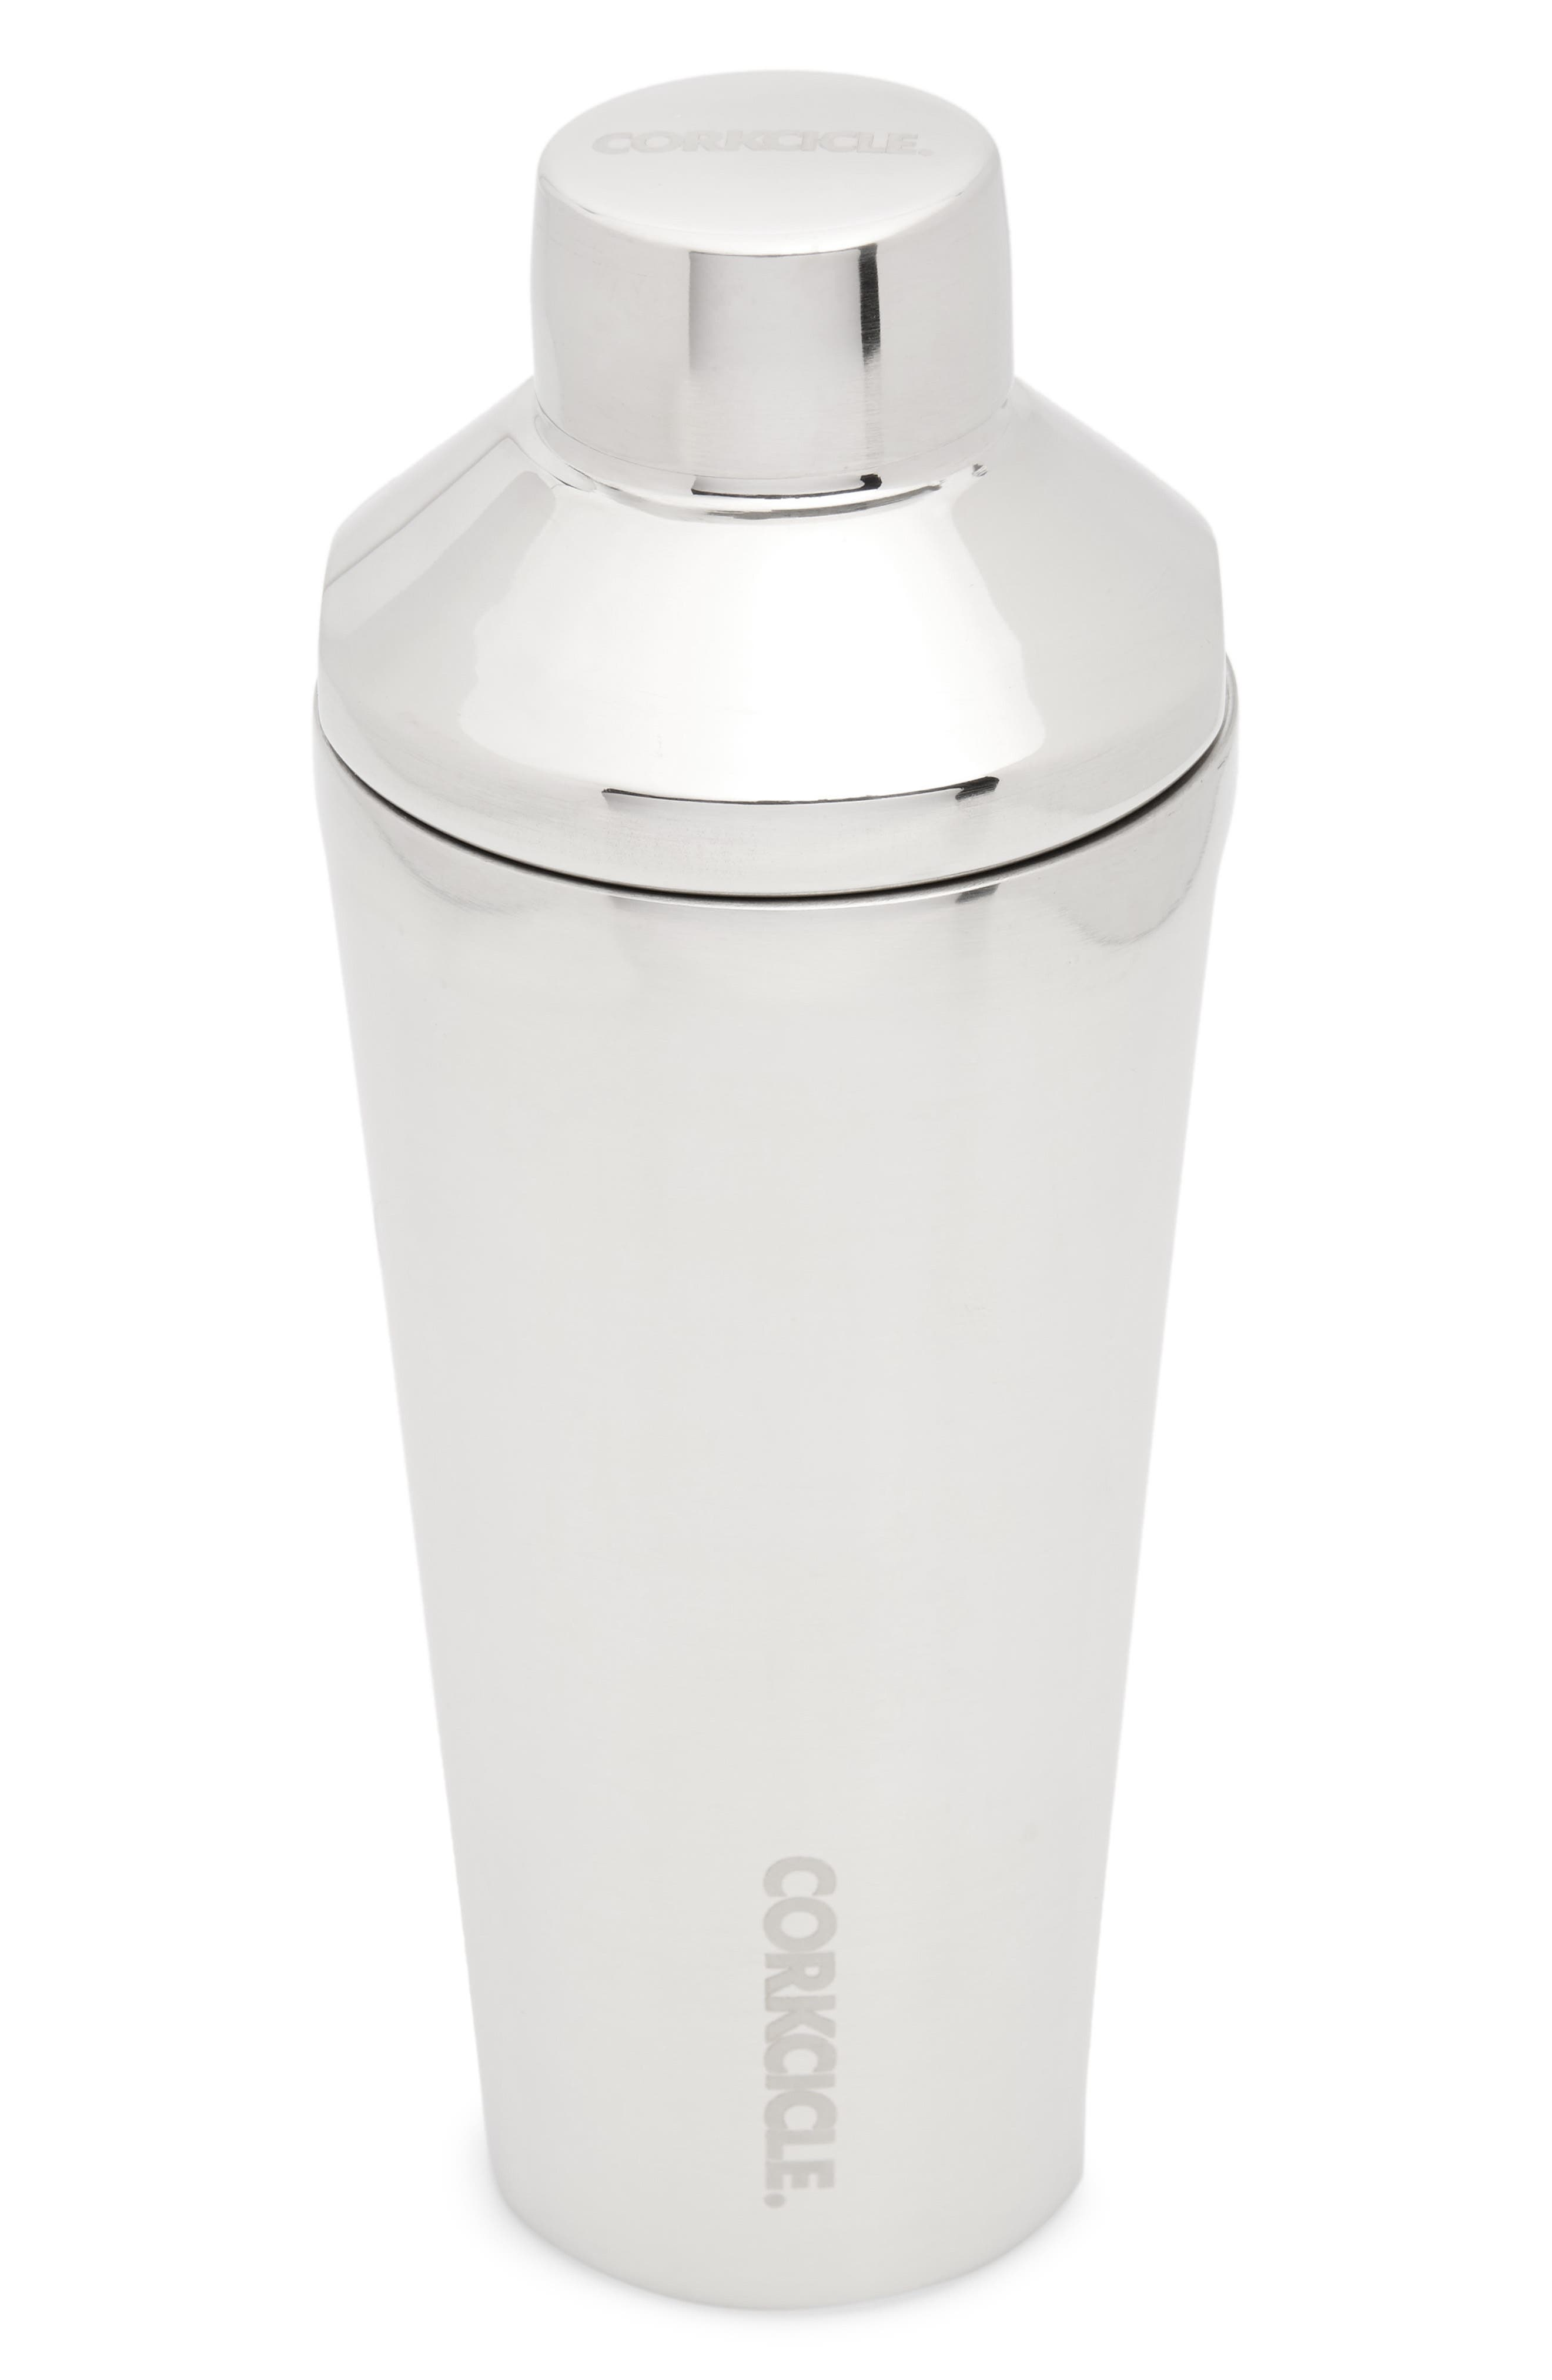 Main Image - Corkcicle Insulated Stainless Steel Shaker